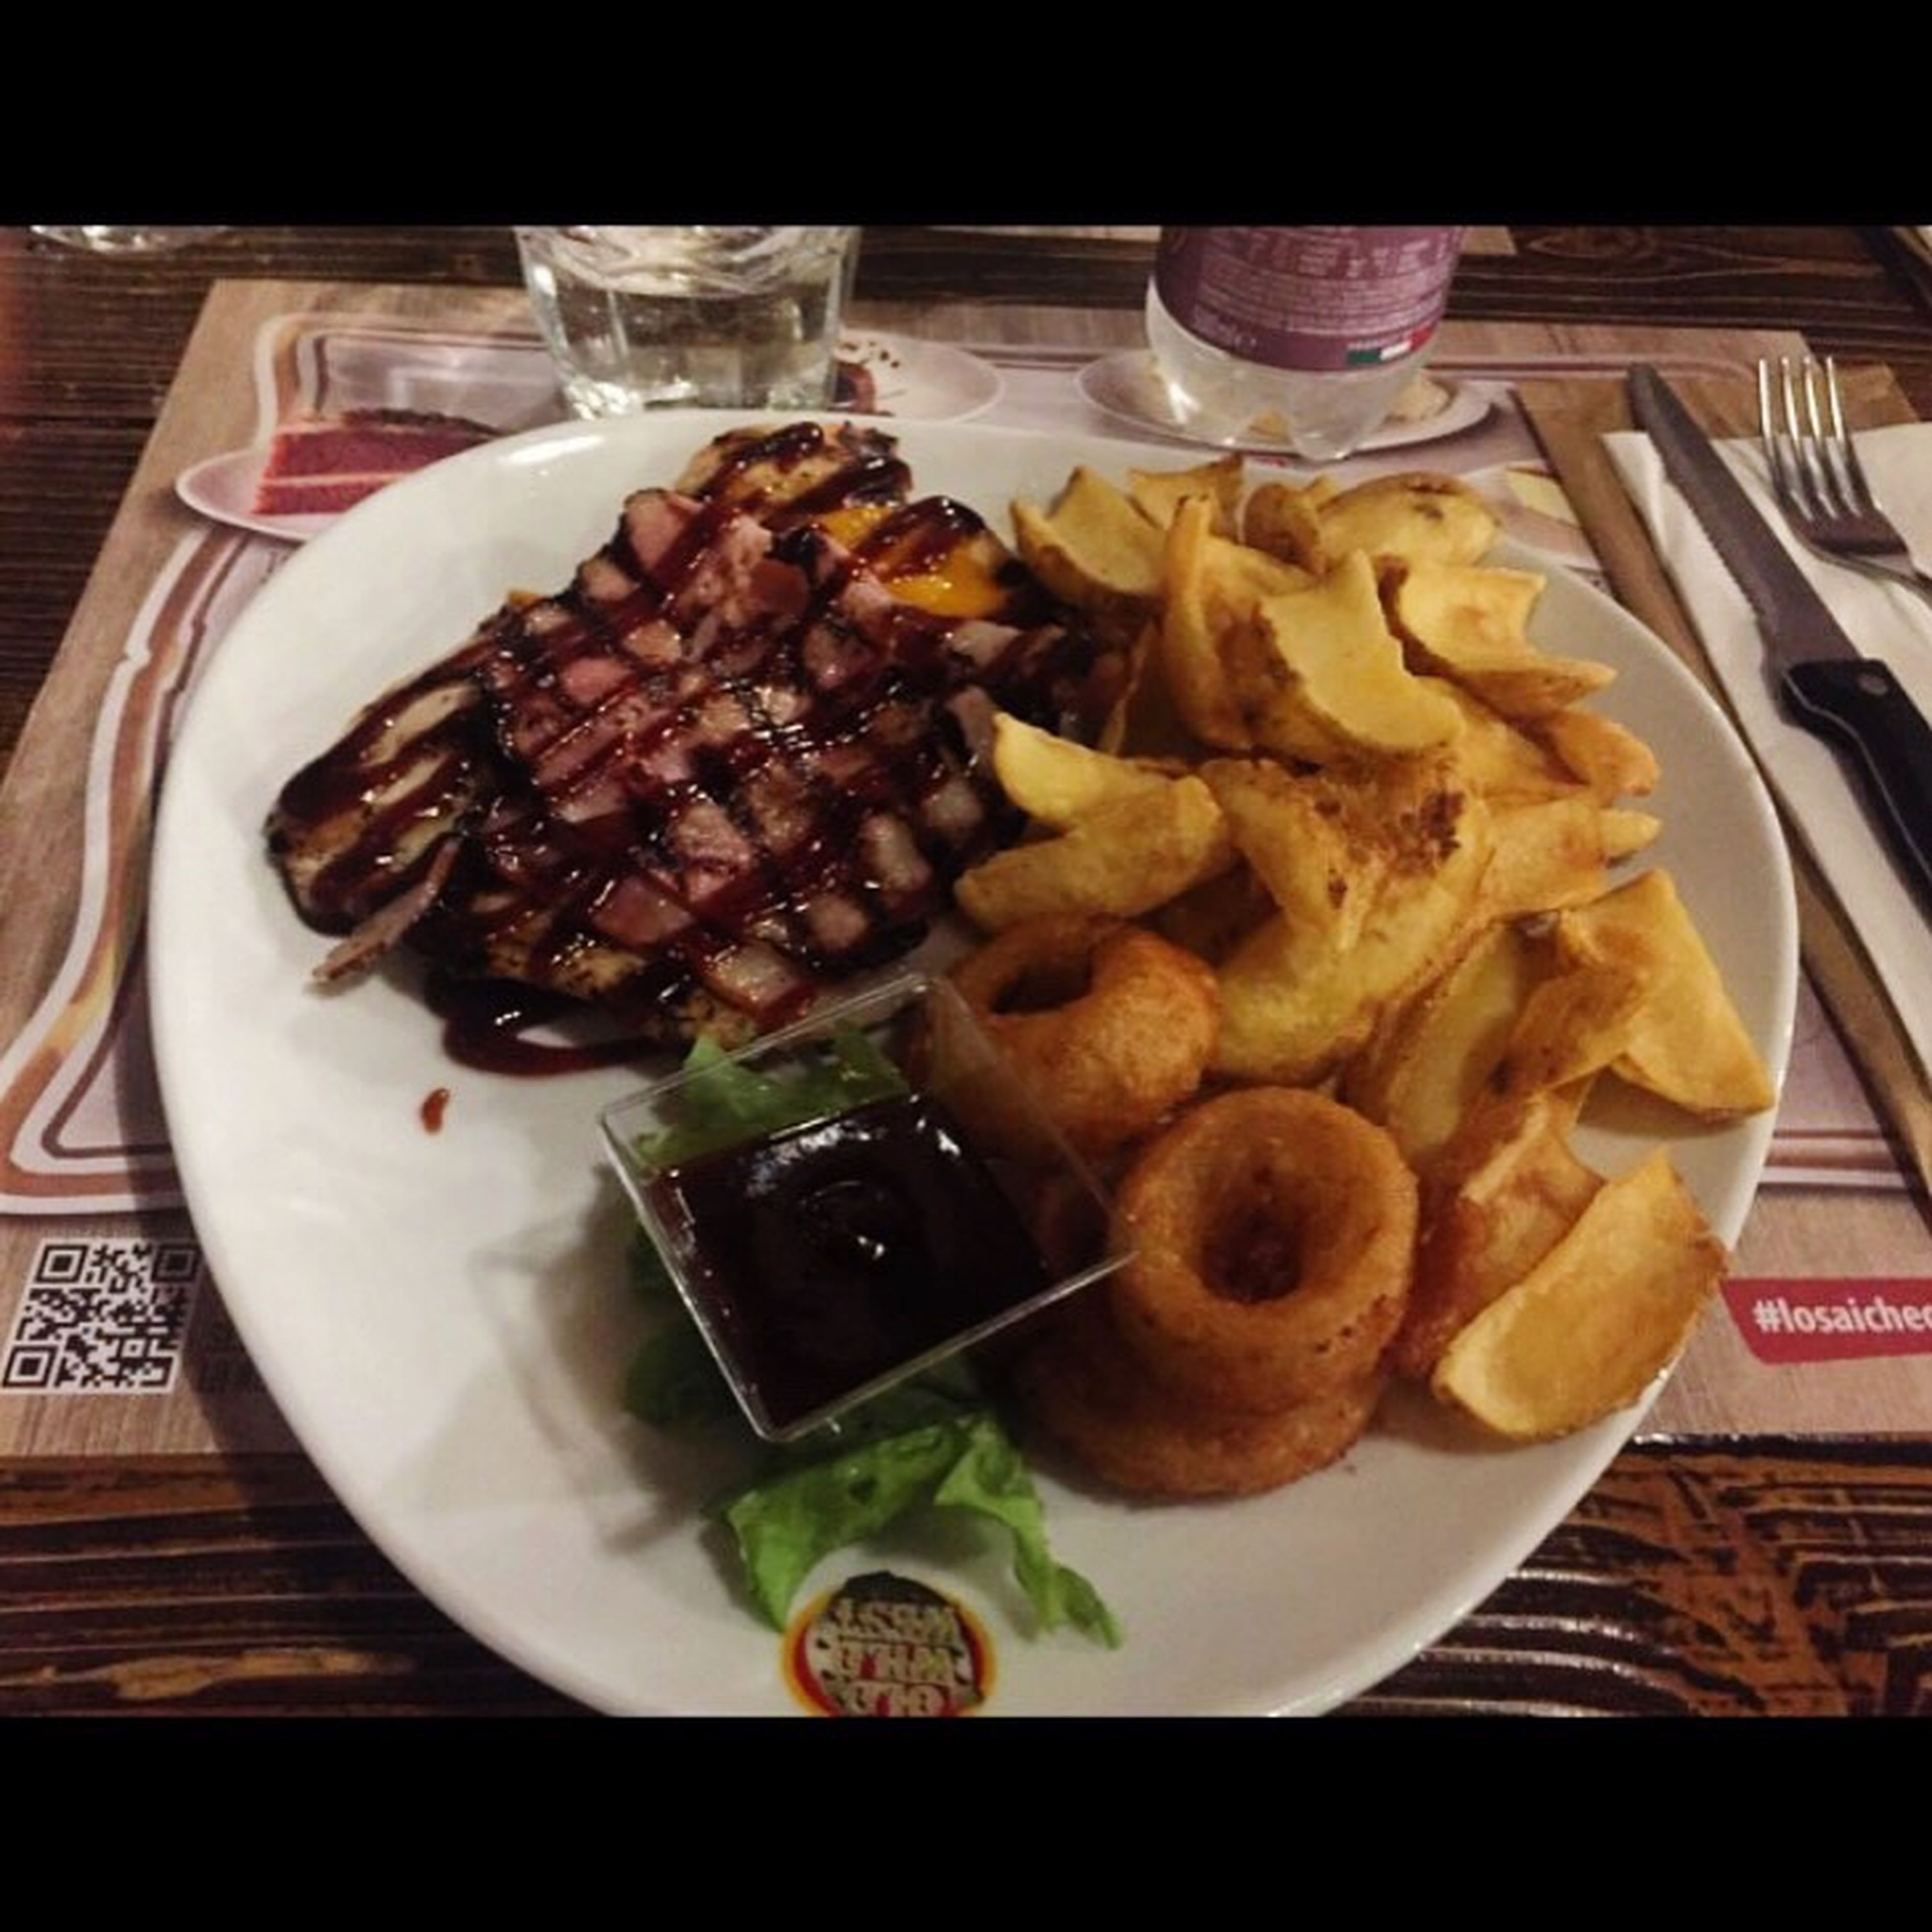 🥓🥓 High Angle View Food Ready-to-eat Food And Drink Indoors  No People Freshness Table Plate Close-up Fast Food Unhealthy Eating Deep Fried